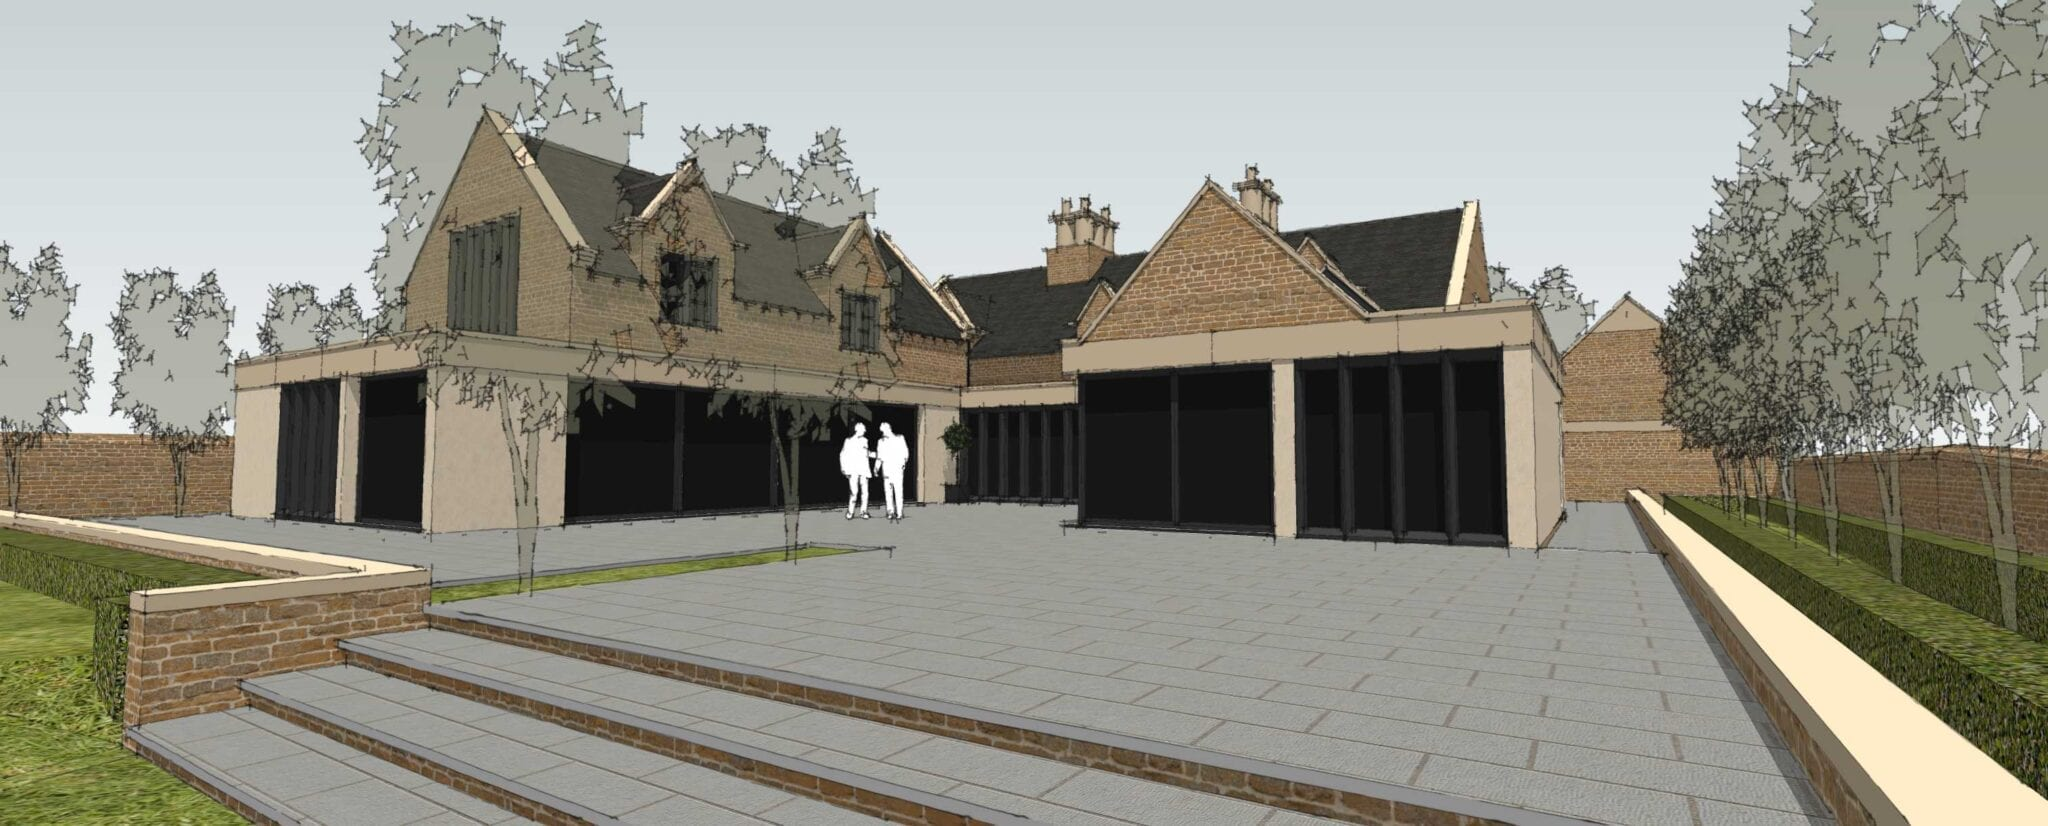 Planning Submitted for Extensions to a Period Property…